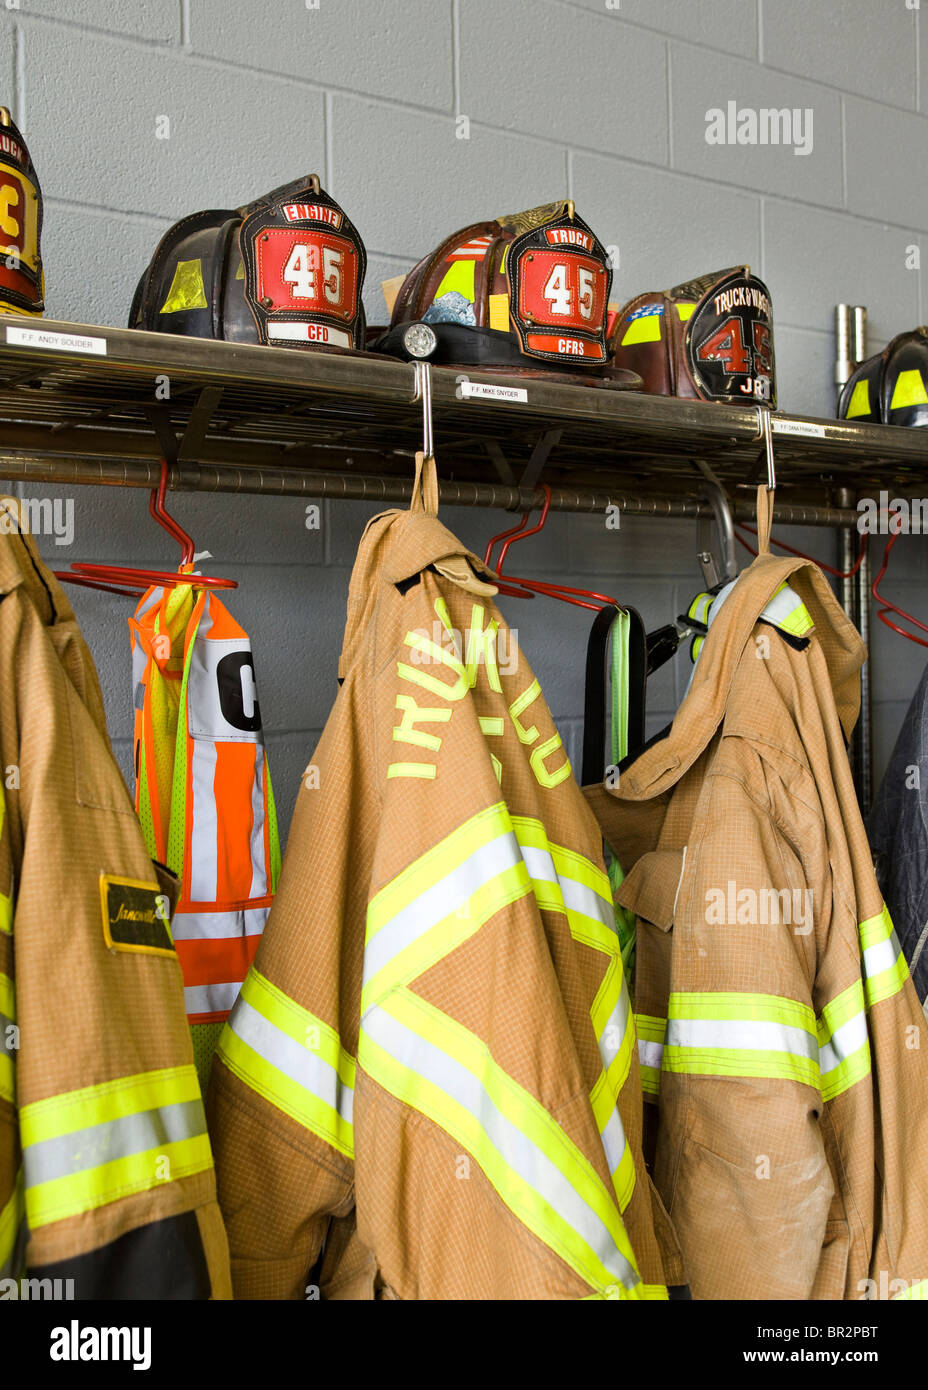 American firefighter helmets and turnout coats - Pennsylvania USA - Stock Image